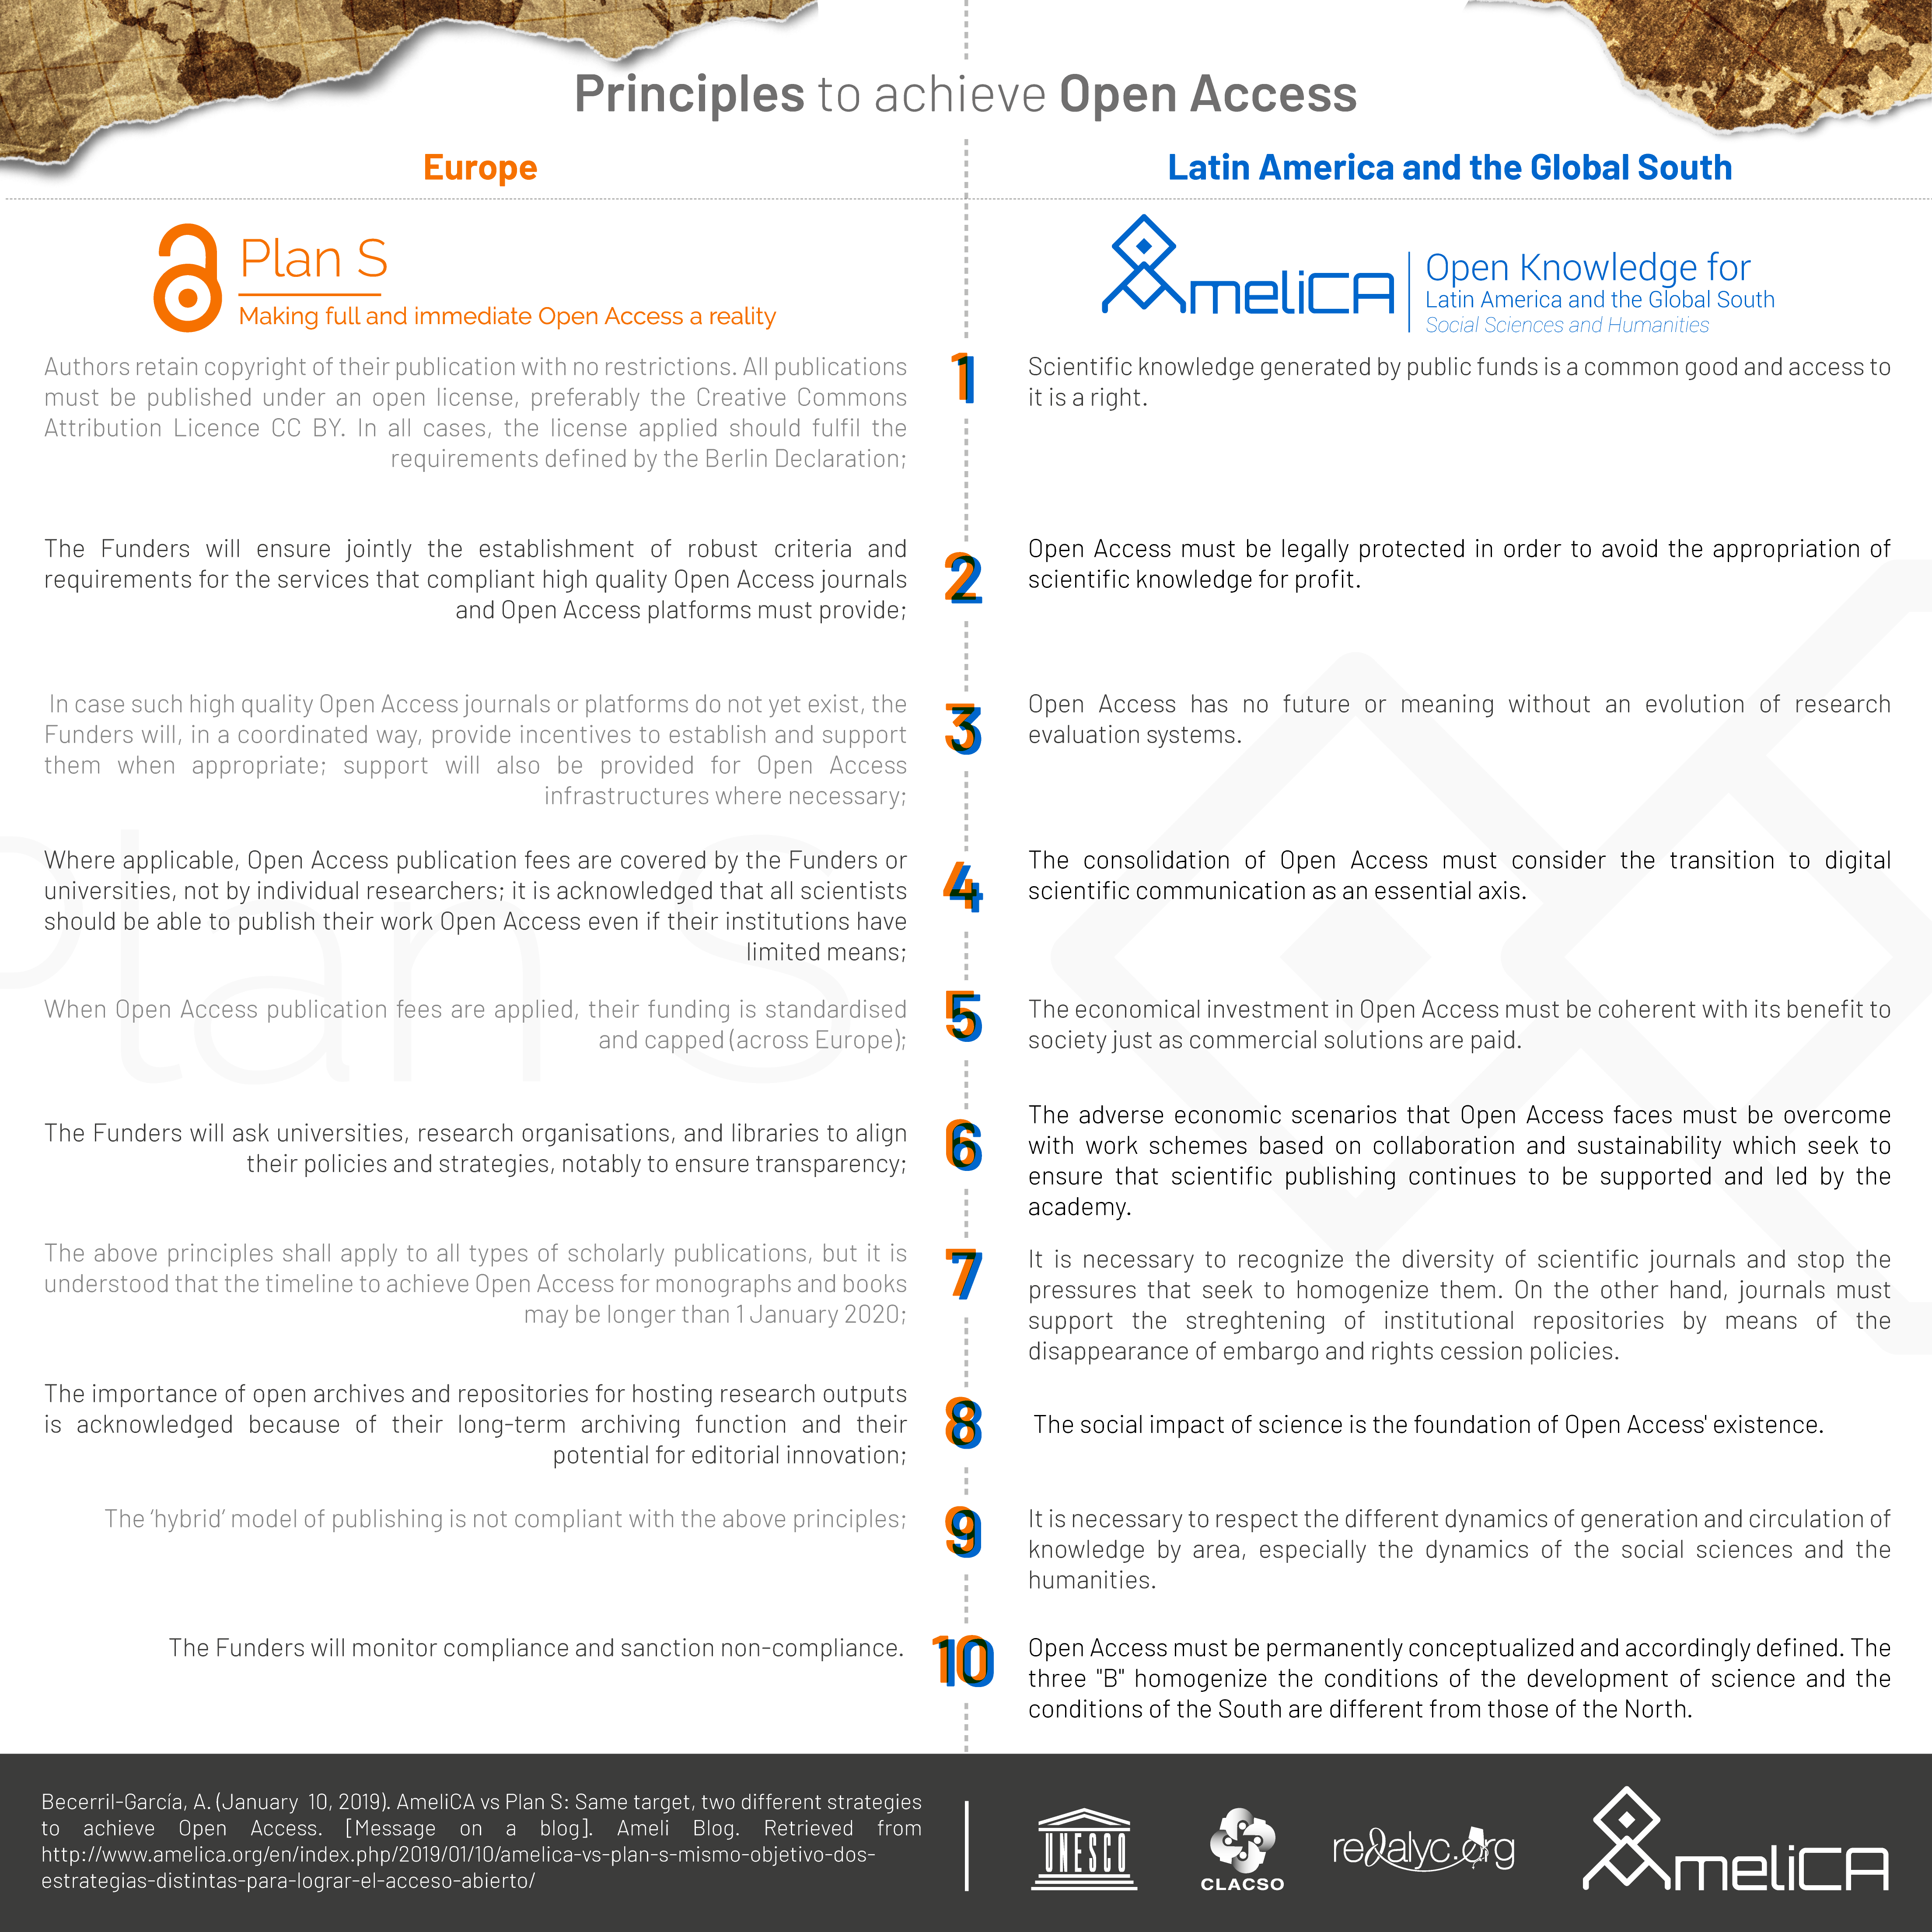 There are coincidences between the proposals of Plan S and AmeliCA, such as establishing that decisive steps must be taken to achieve Open Access.